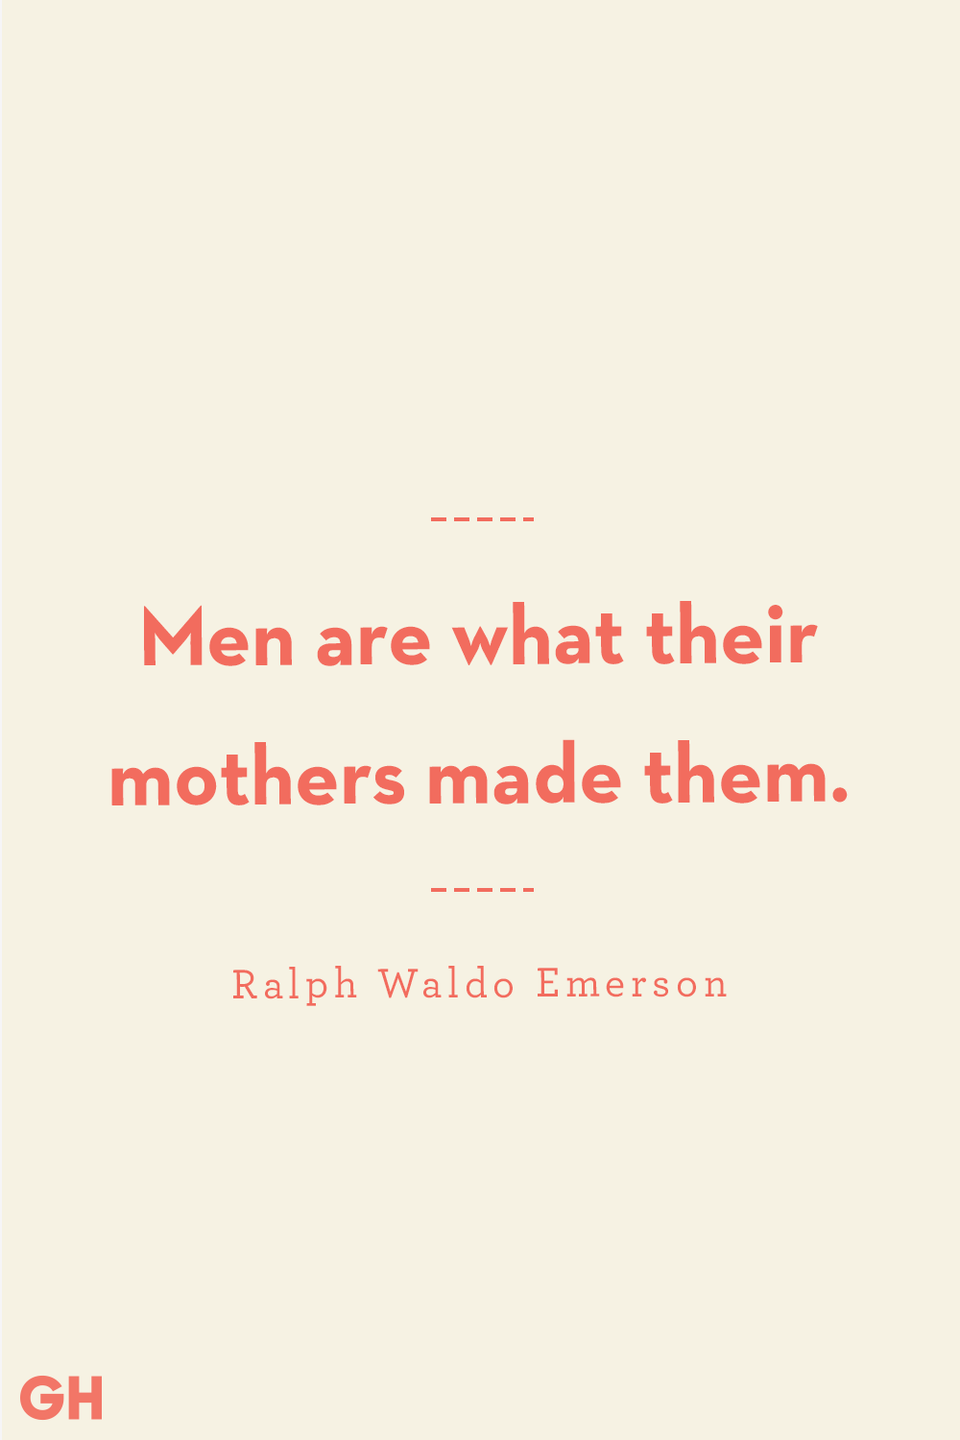 <p>Men are what their mothers made them.</p>